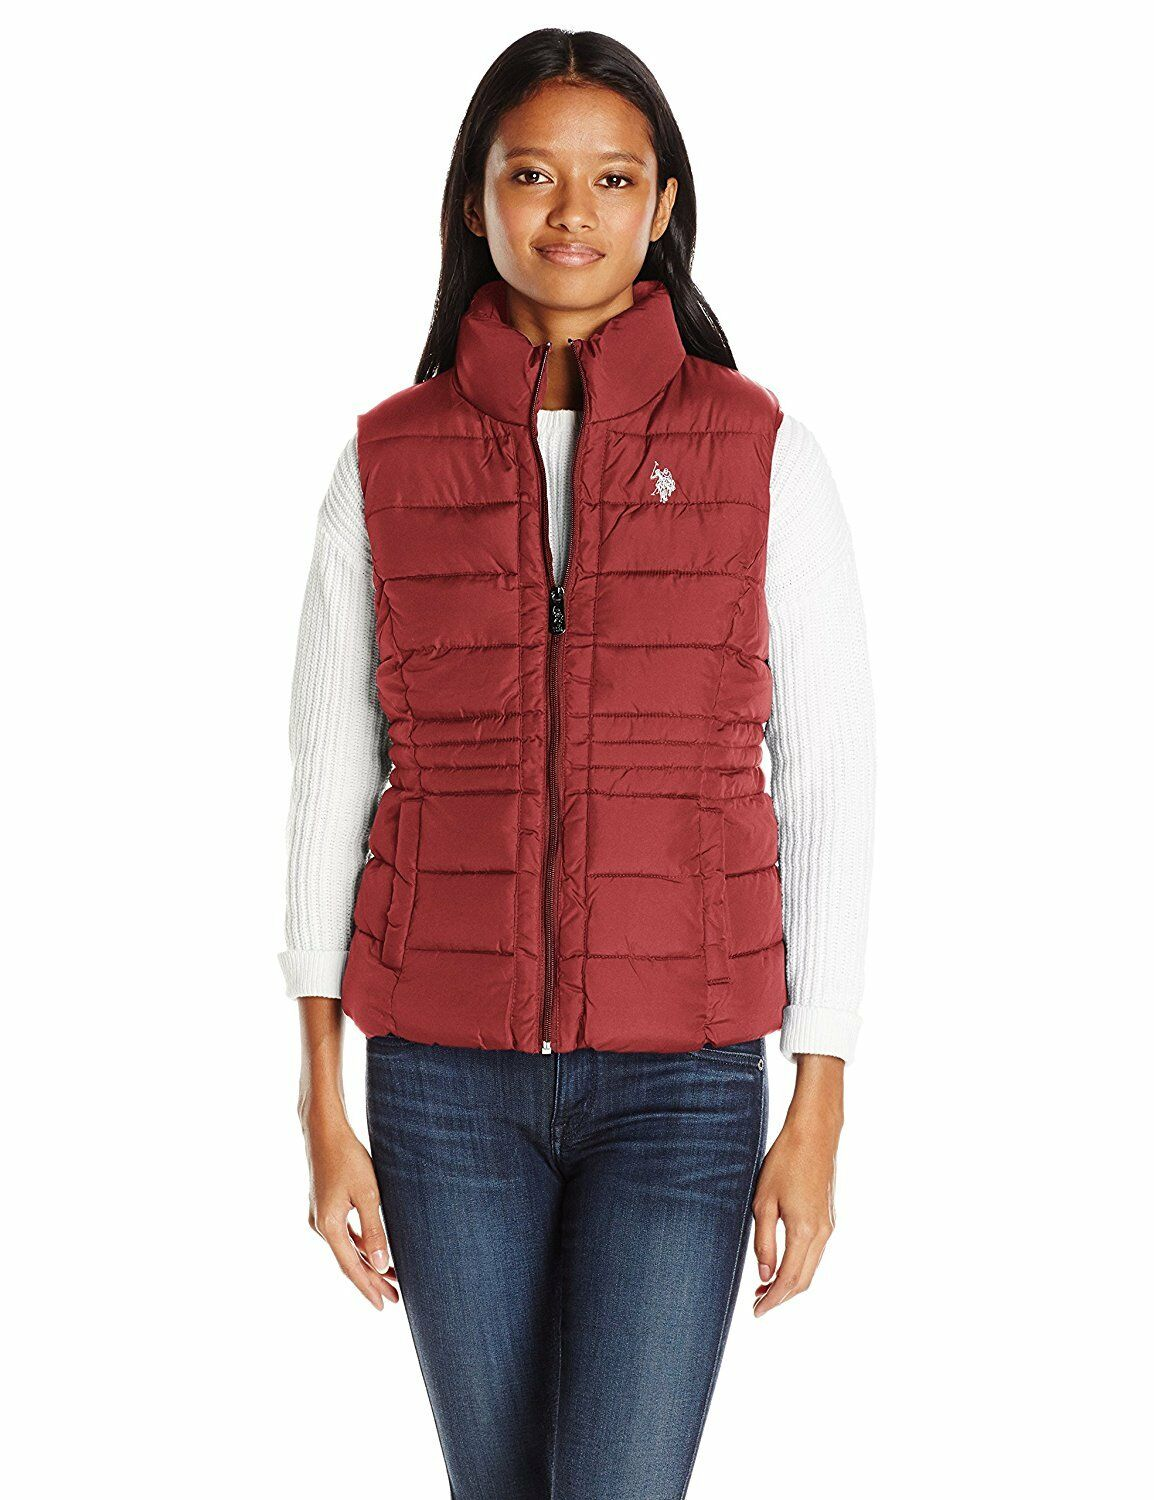 U.S. Polo Assn. Juniors Outerwear 01-5093-PF-RMRD-M damen- Choose SZ Farbe.